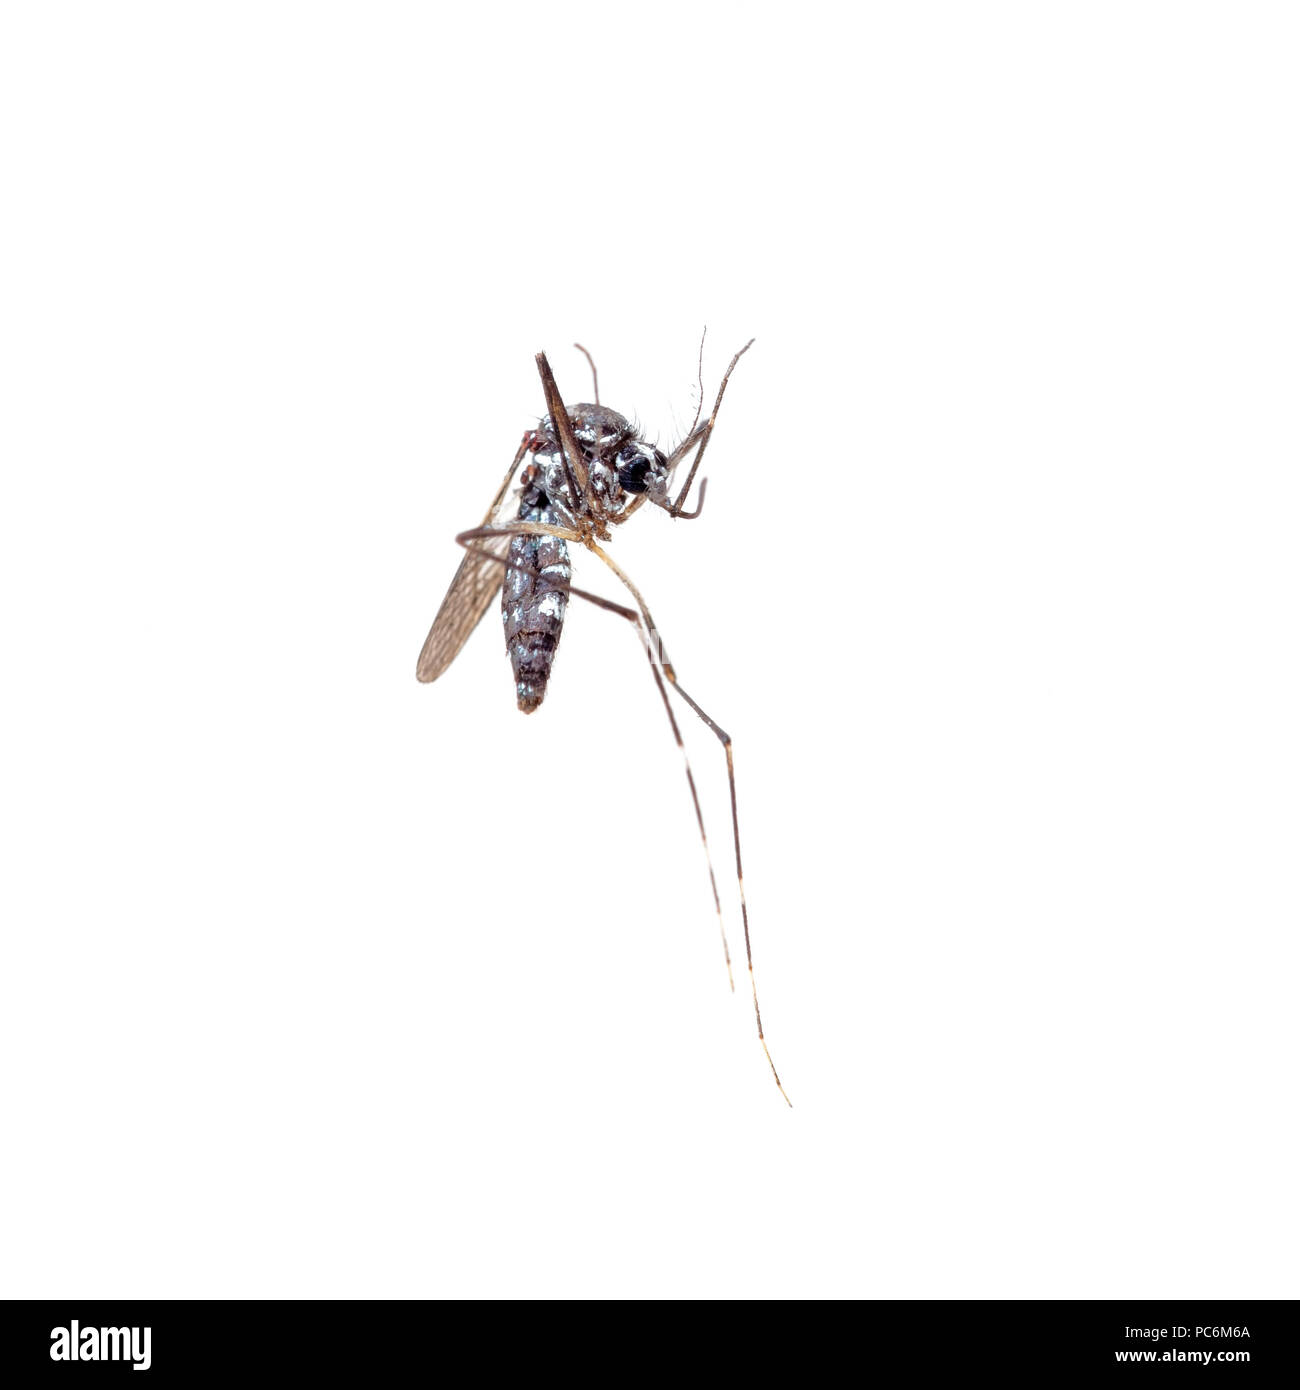 Dead Asian Tiger Mosquito, Aedes albopictus, macro on white background. A transmitter of many viral pathogens, including yellow fever virus, dengue fever, and Chikungunya fever. - Stock Image